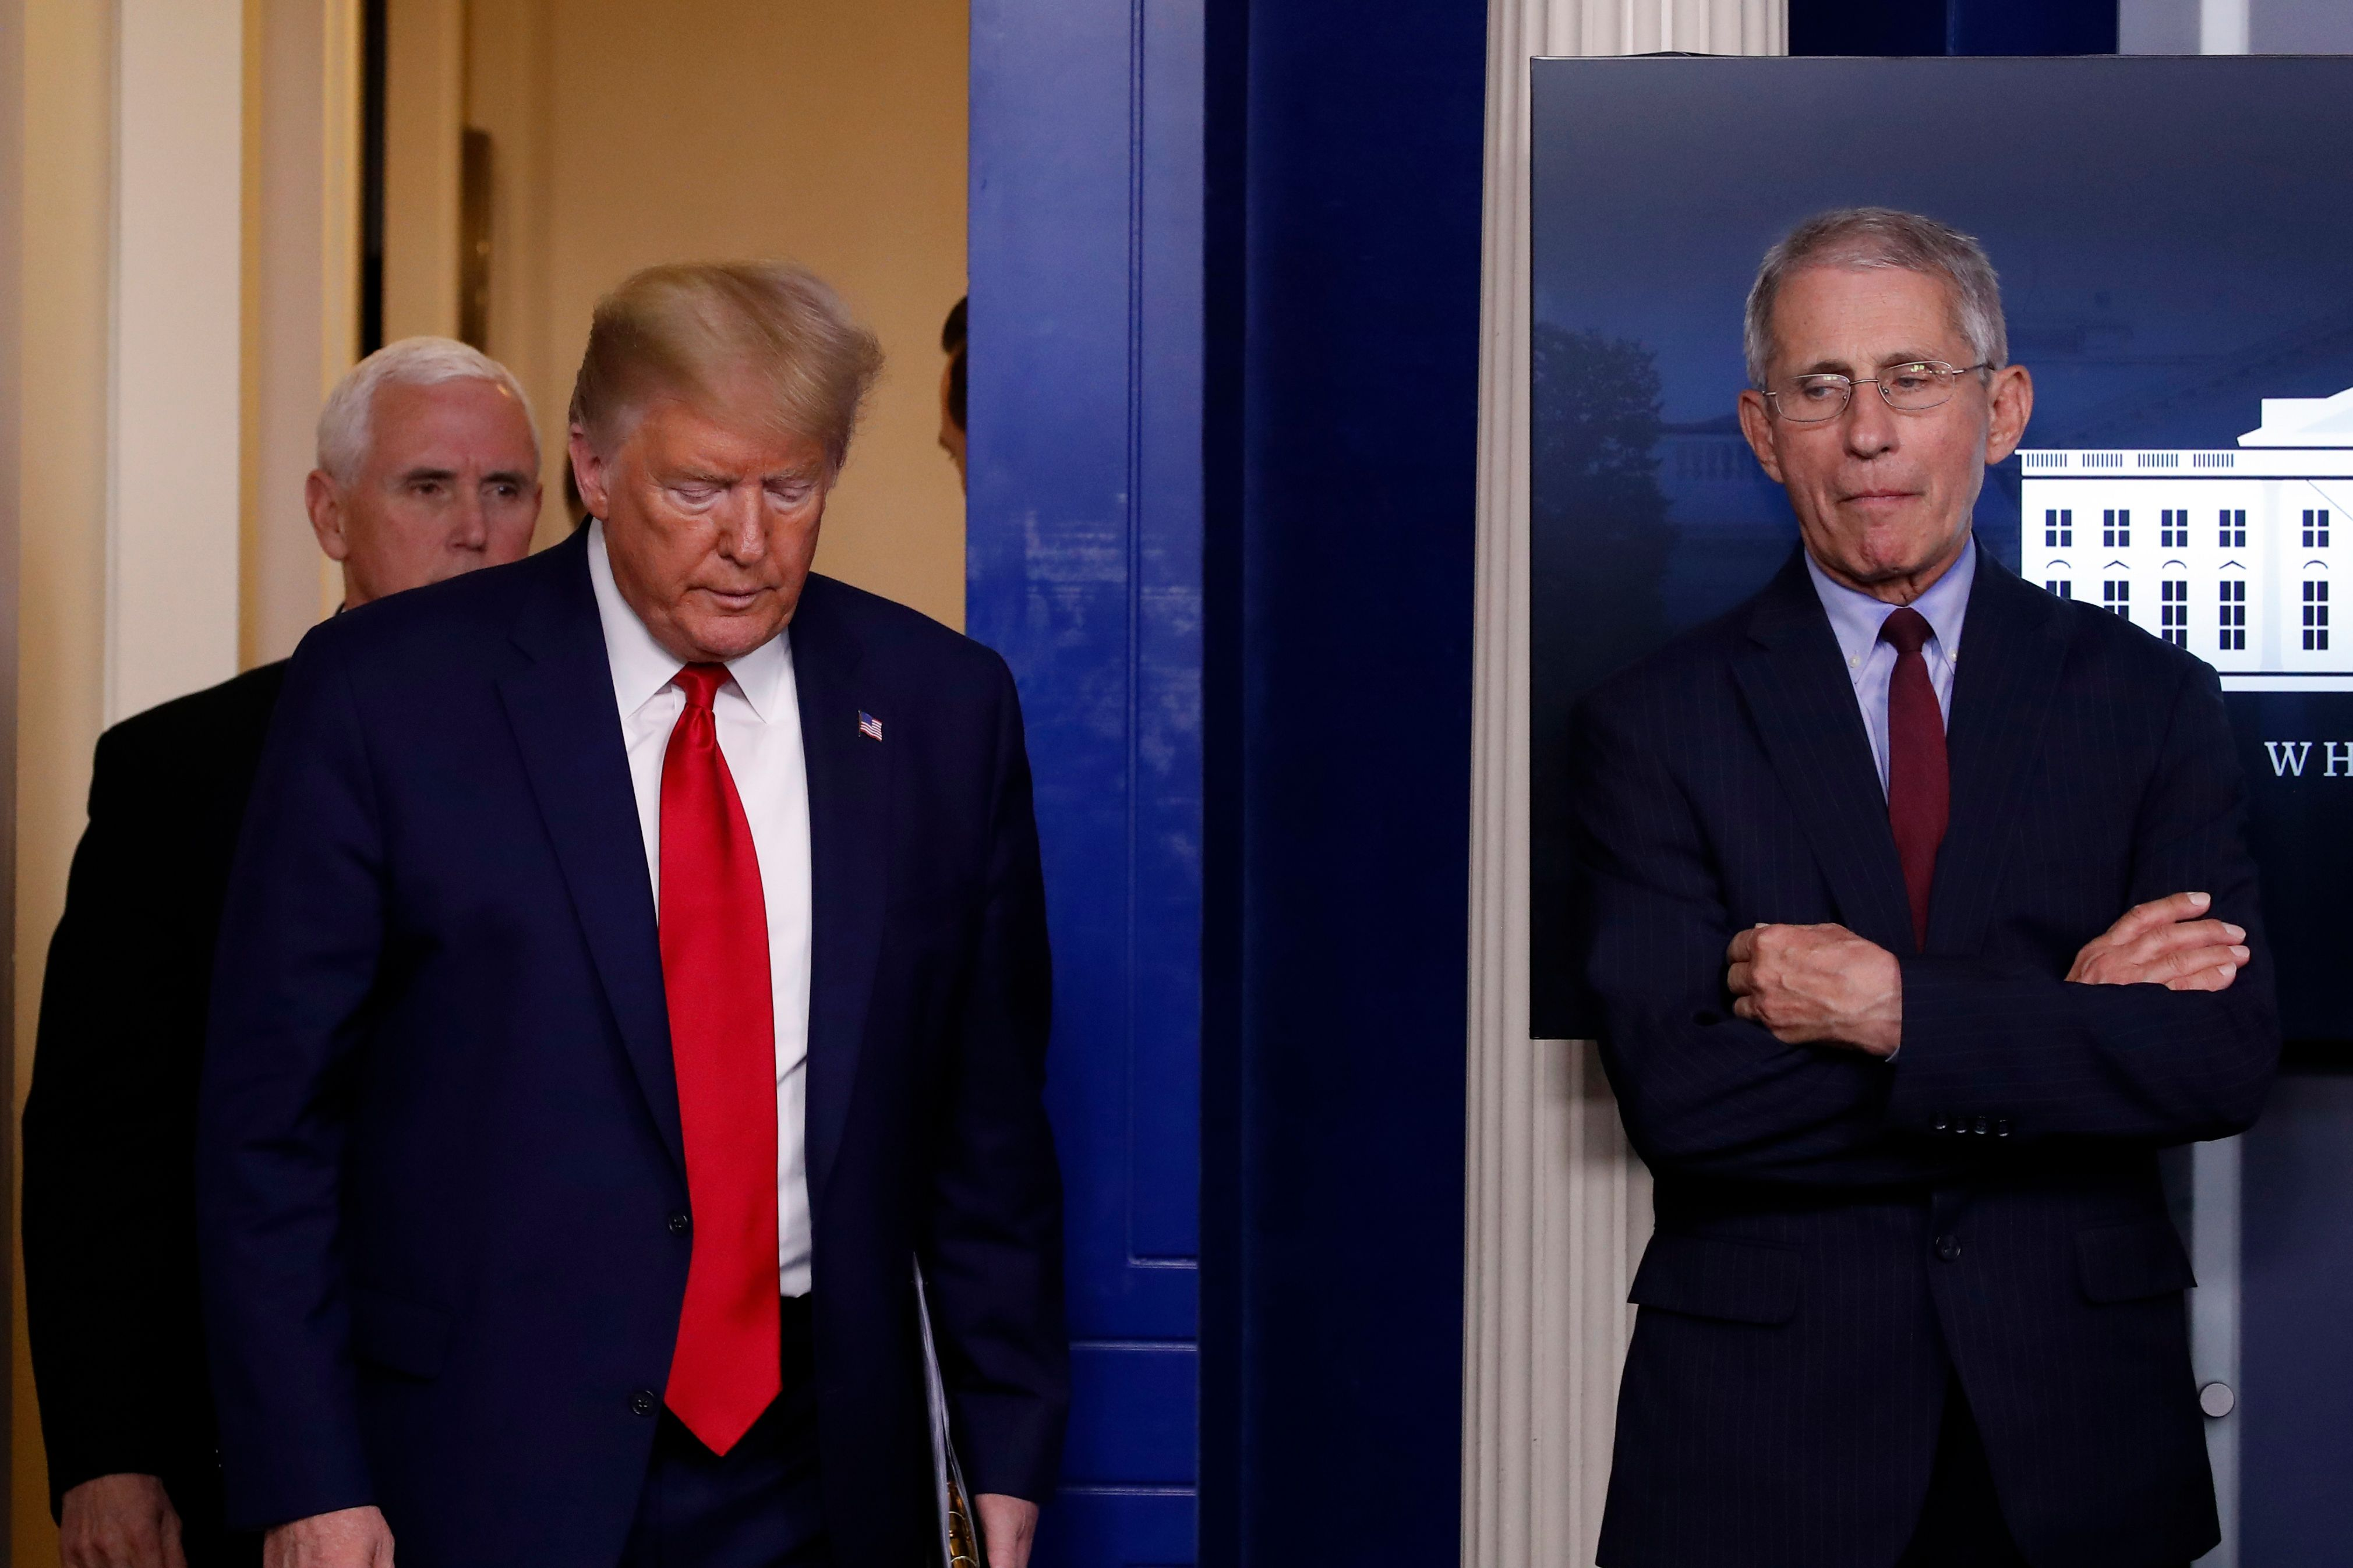 Then-President Donald Trump arrives with his vice president, Mike Pence, to speak to the press about the coronavirus on March